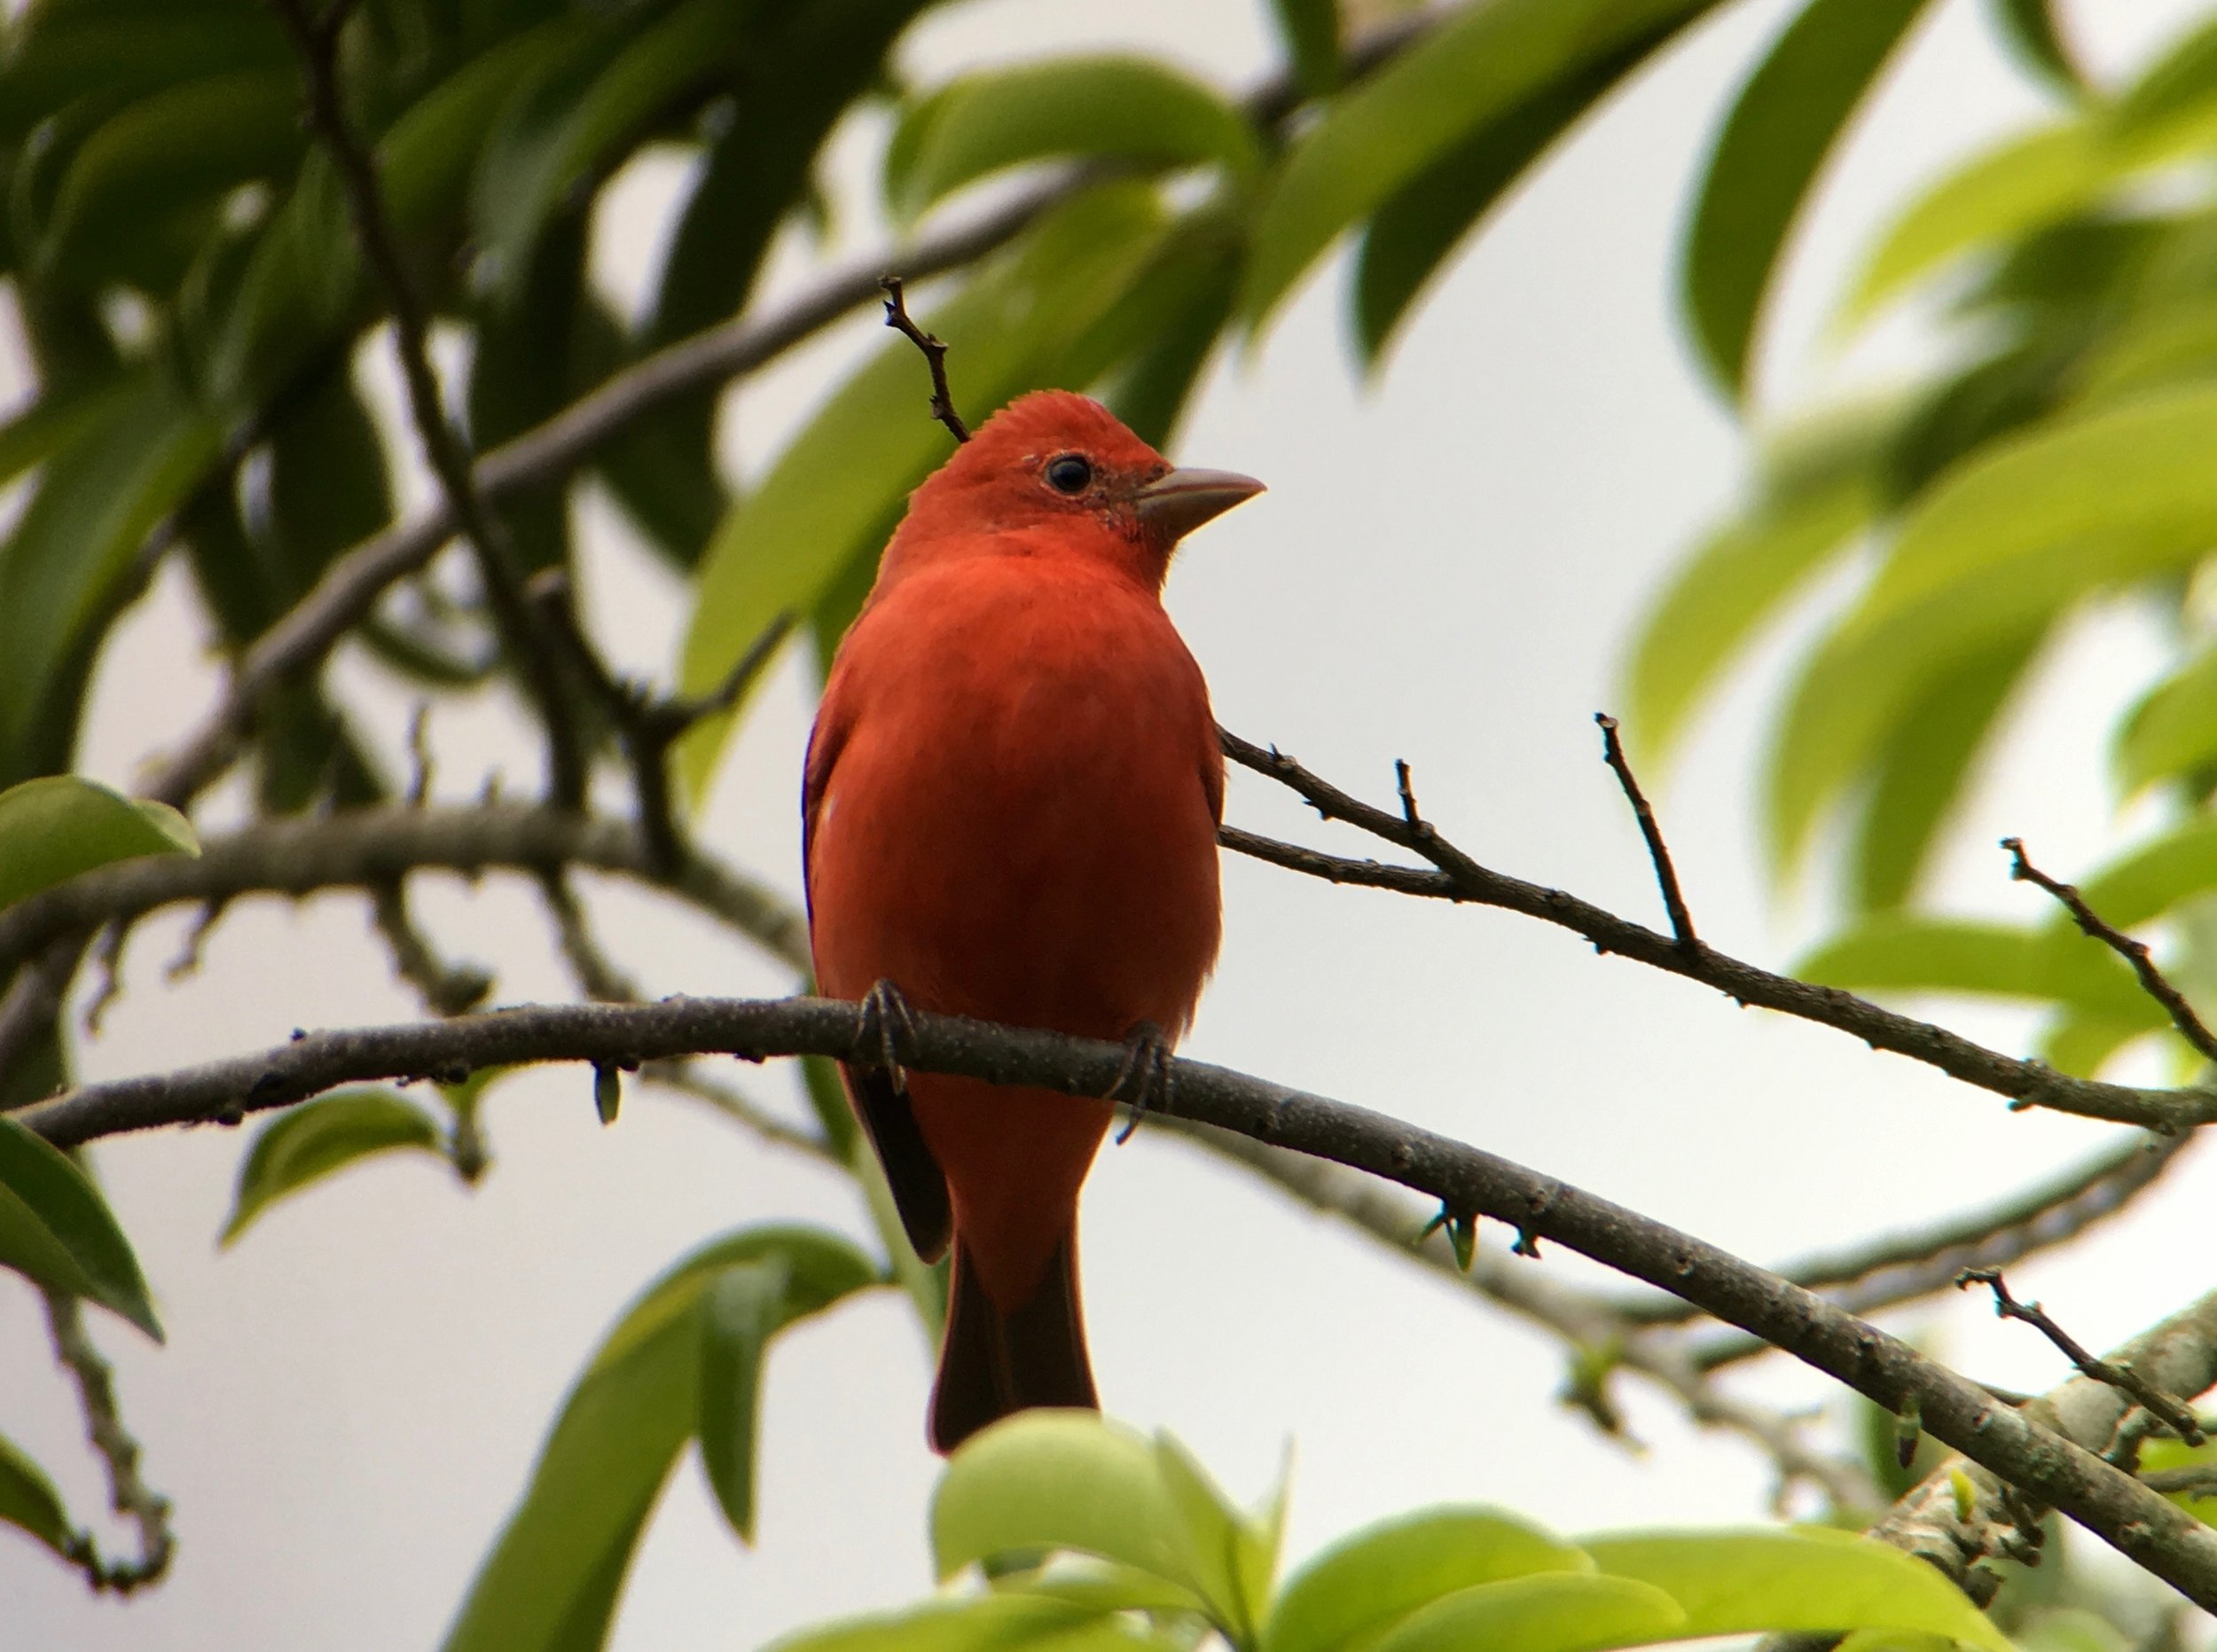 A summer tanager. Since it was early March when this was taken, it would be in the US in just over a month.